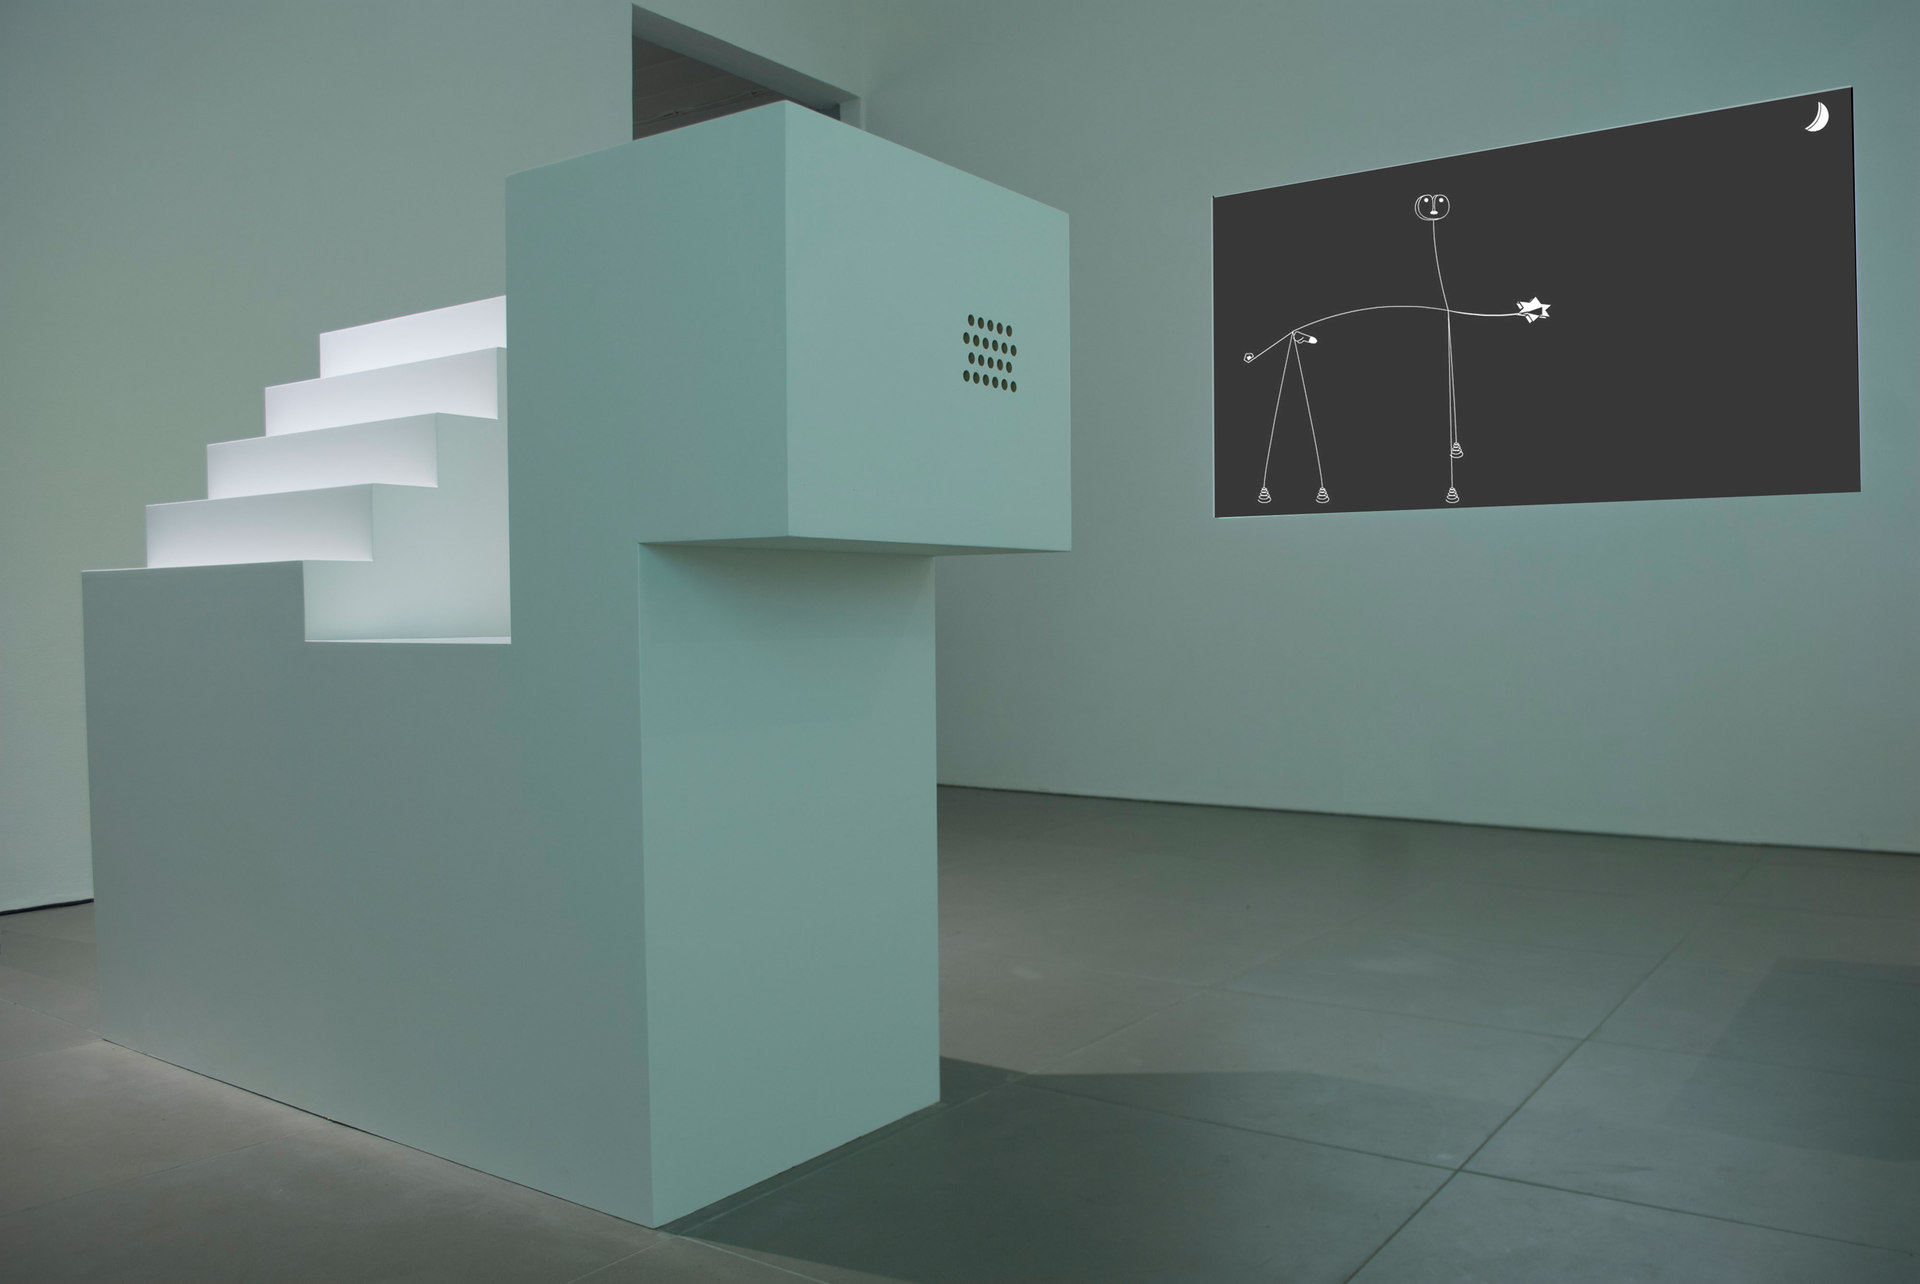 Angelo Plessas, Twilight Of The Idols, 'TwilightOfTheIdols.com and Mouse Pad Monument', 2012, mdf, digital projection, Cell Project Space